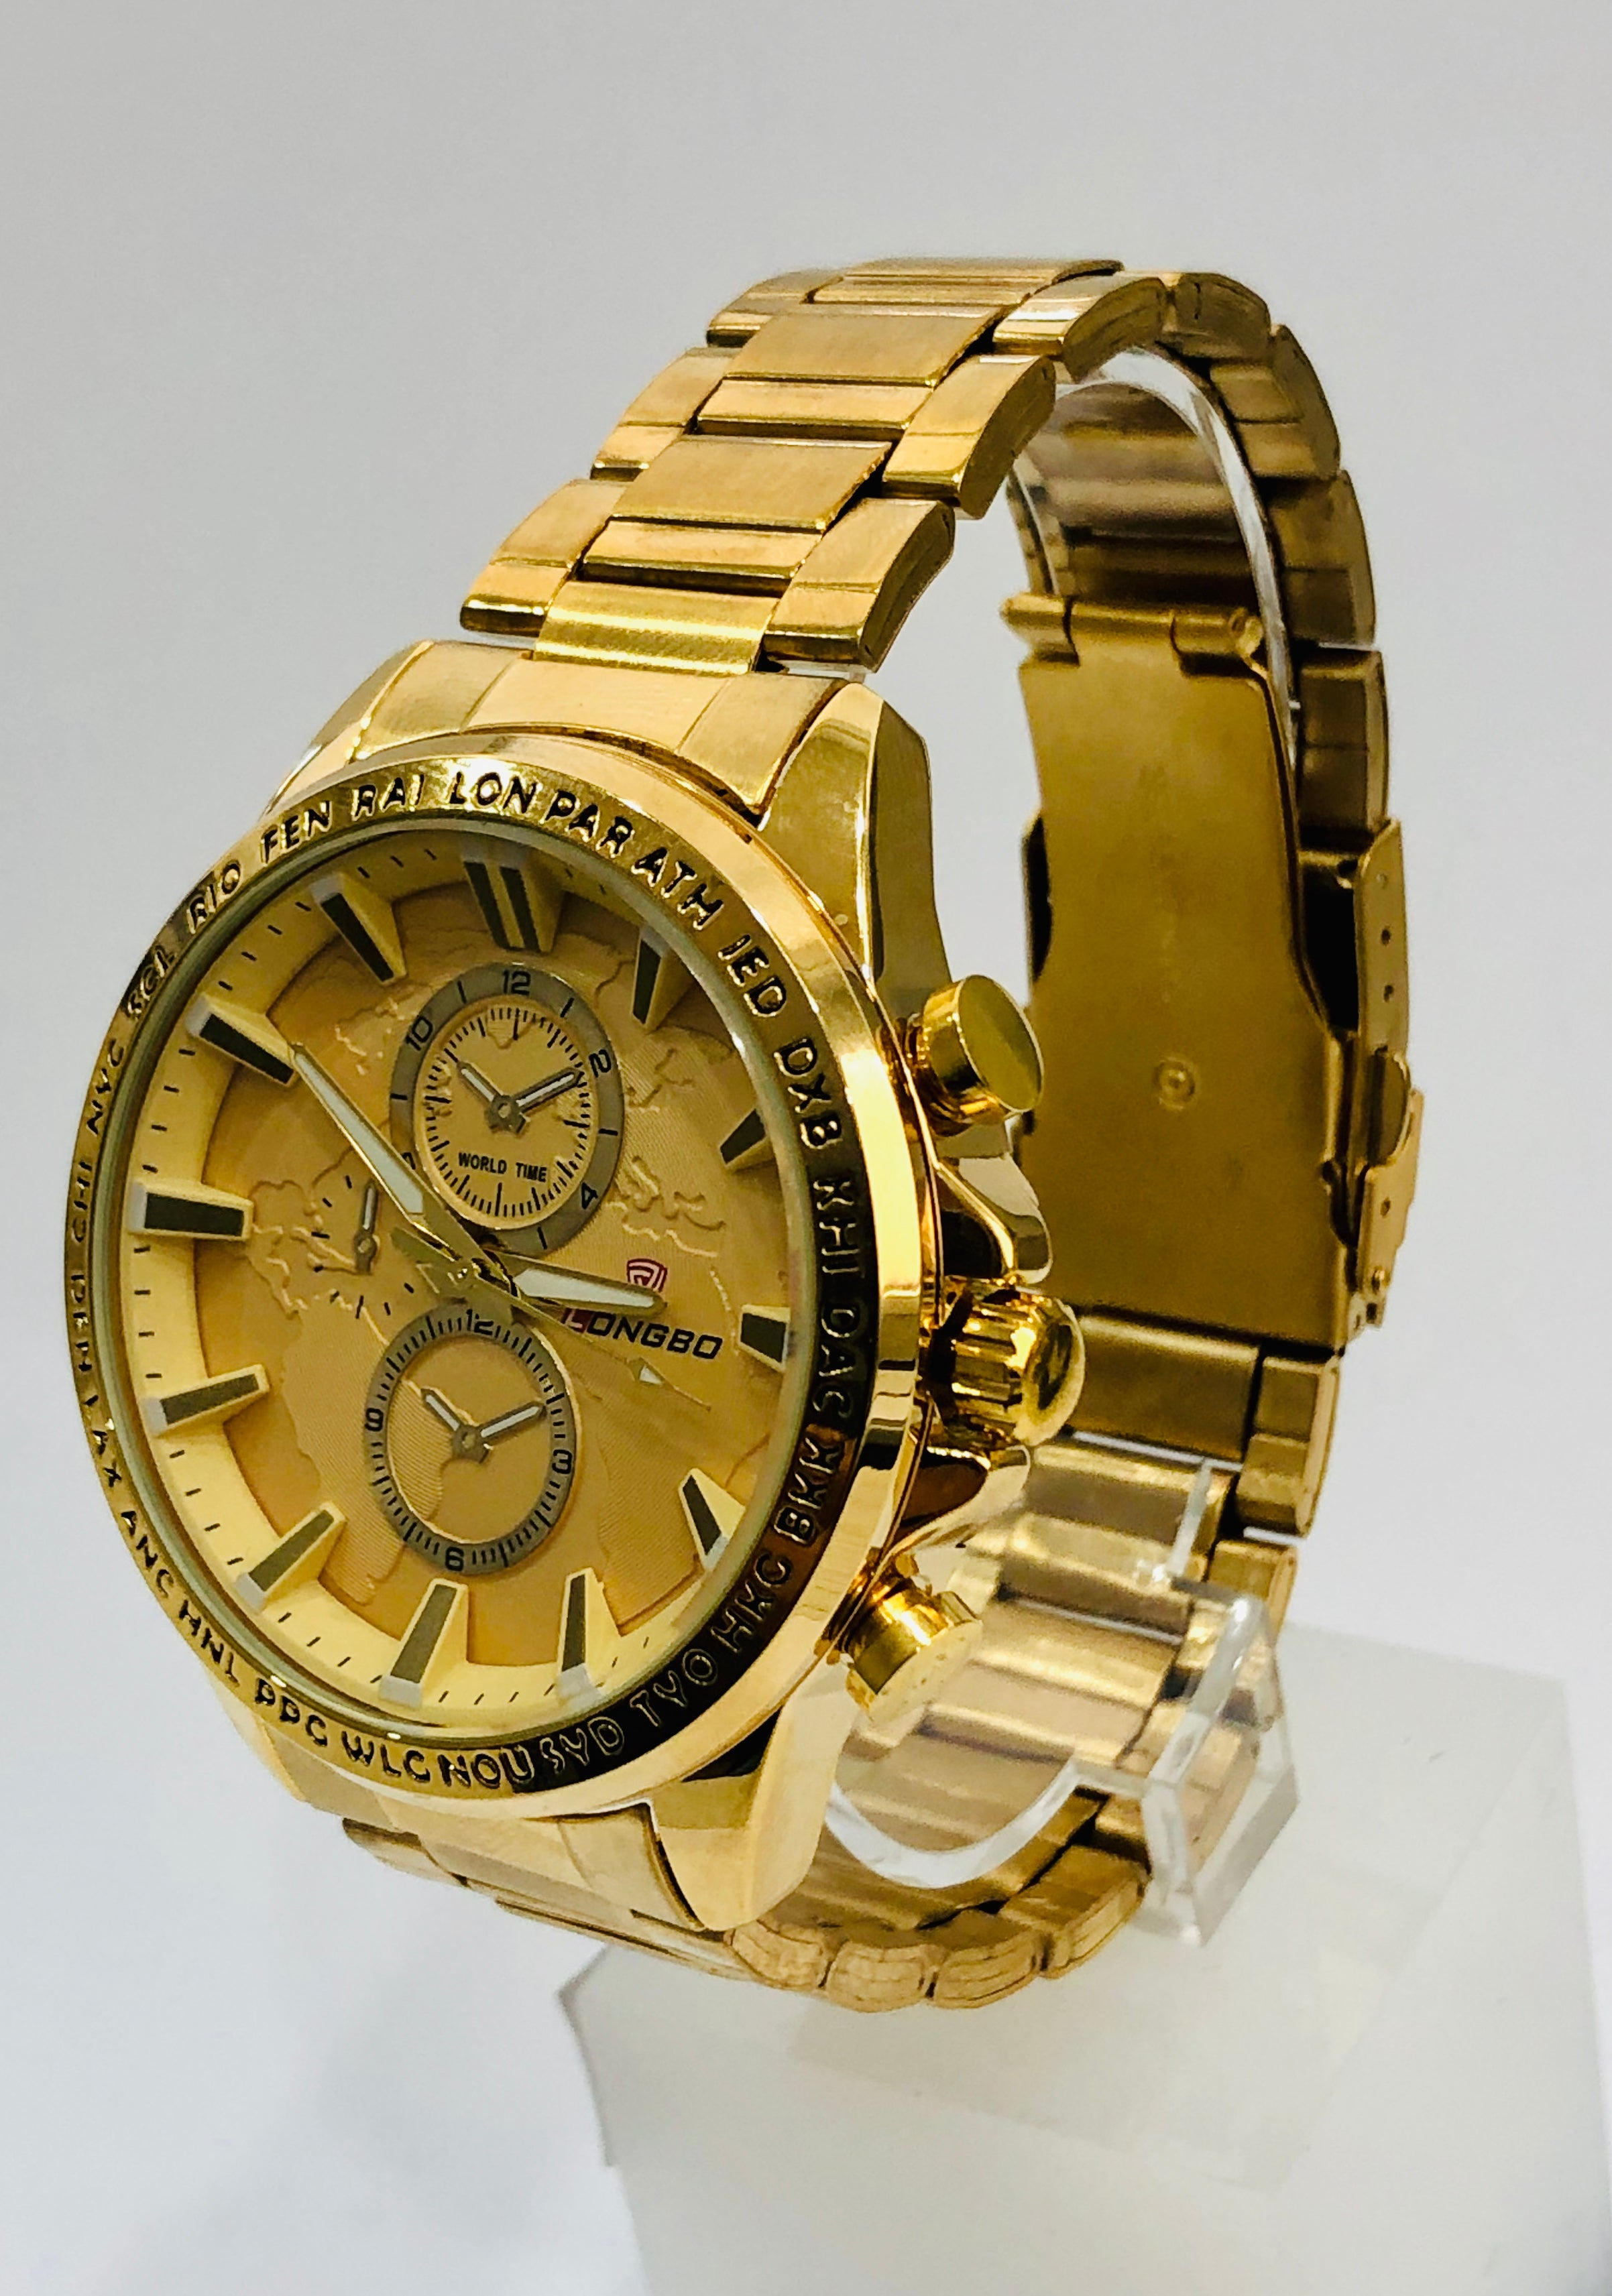 Men's Dress Watch Japanese Quartz Movement  - 008